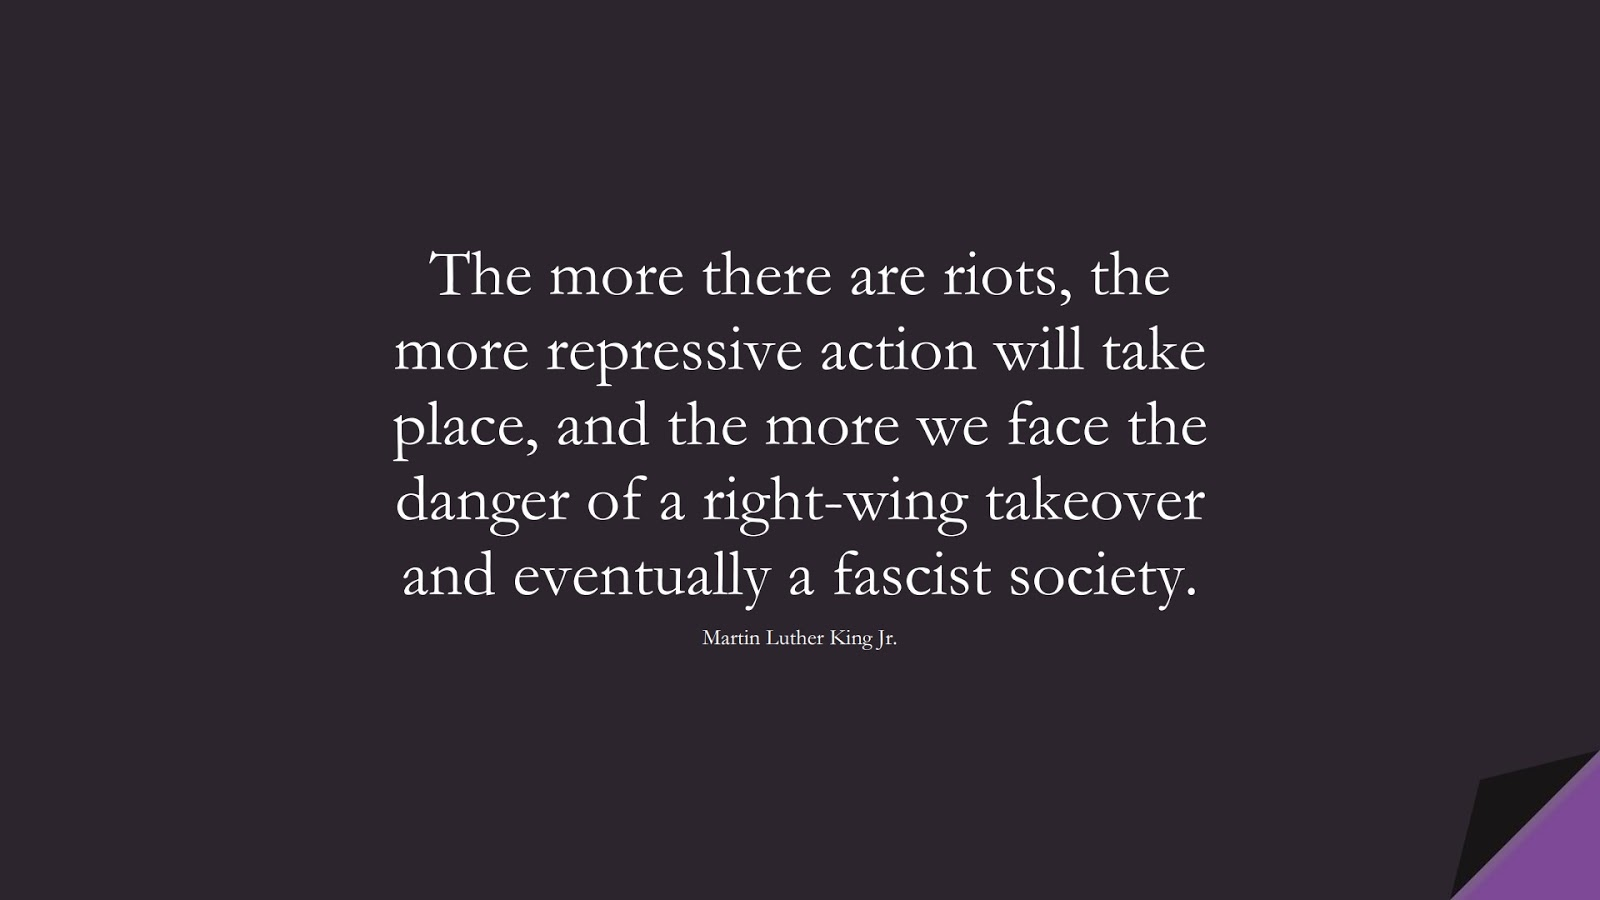 The more there are riots, the more repressive action will take place, and the more we face the danger of a right-wing takeover and eventually a fascist society. (Martin Luther King Jr.);  #MartinLutherKingJrQuotes